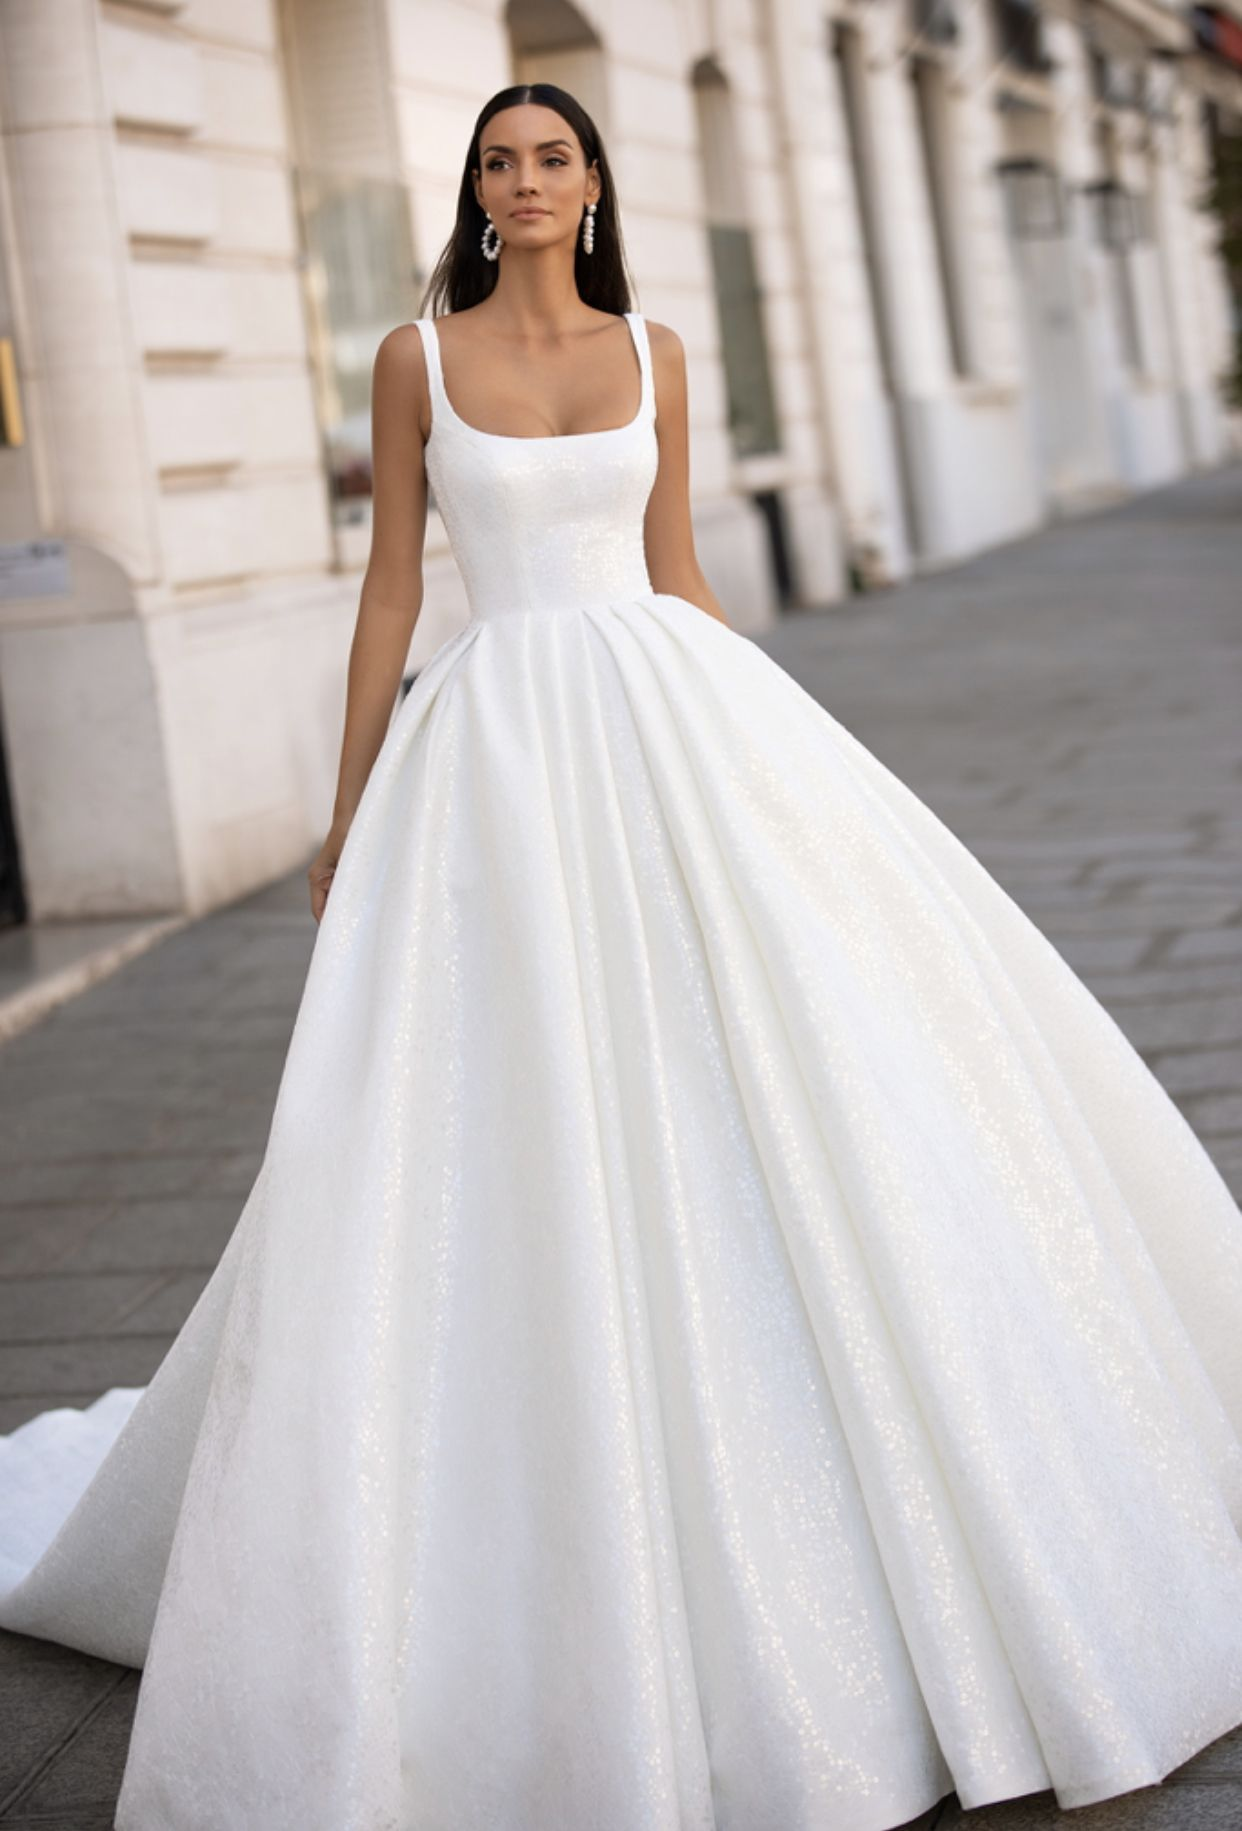 Wedding Dress By Milla Nova In 2020 Different Wedding Dresses Different Wedding Dress Styles Wedding Dresses